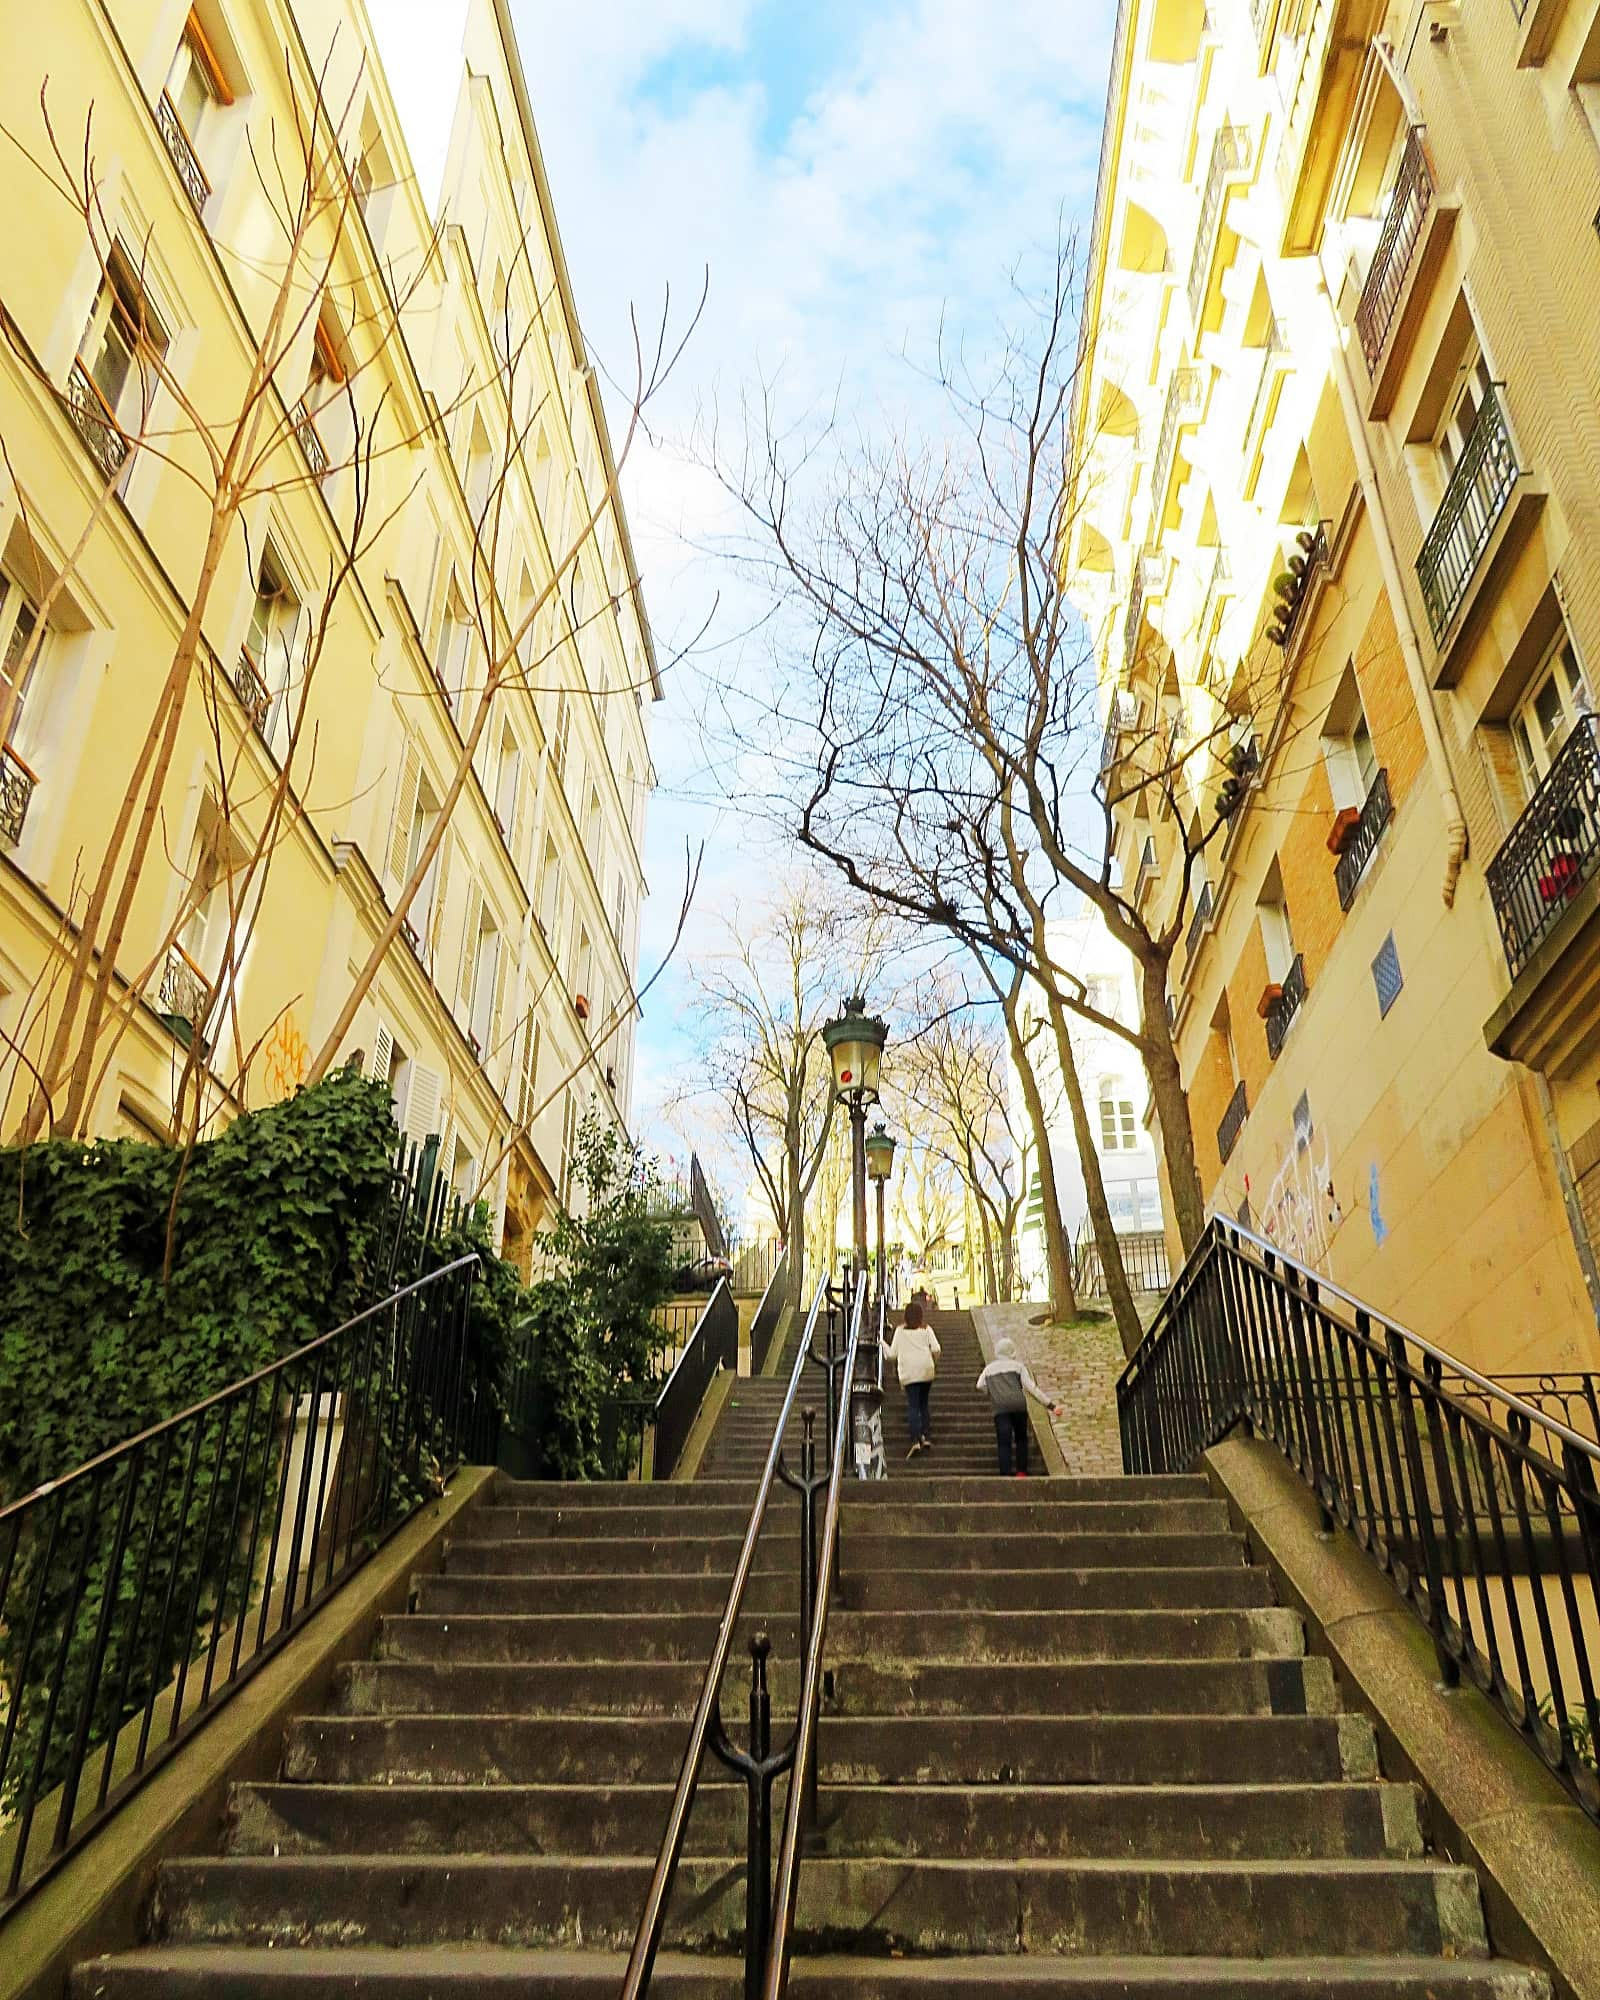 Big kids can climb the stairs to Montmartre, but families with young children may be better off taking the funicular